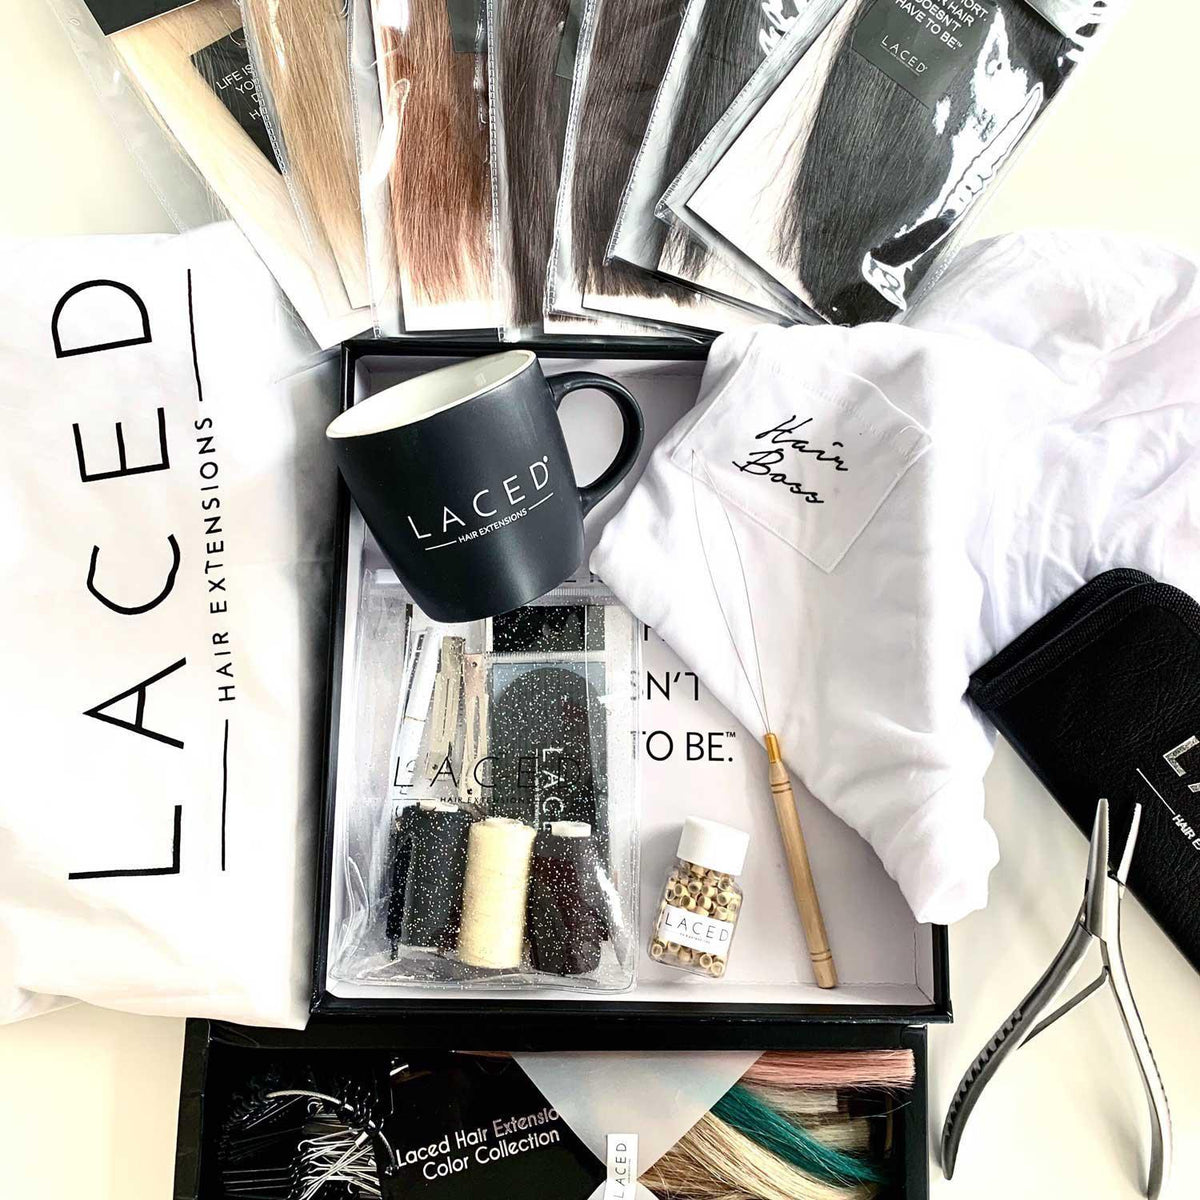 Laced Hair Academy Deluxe Refresher Kit